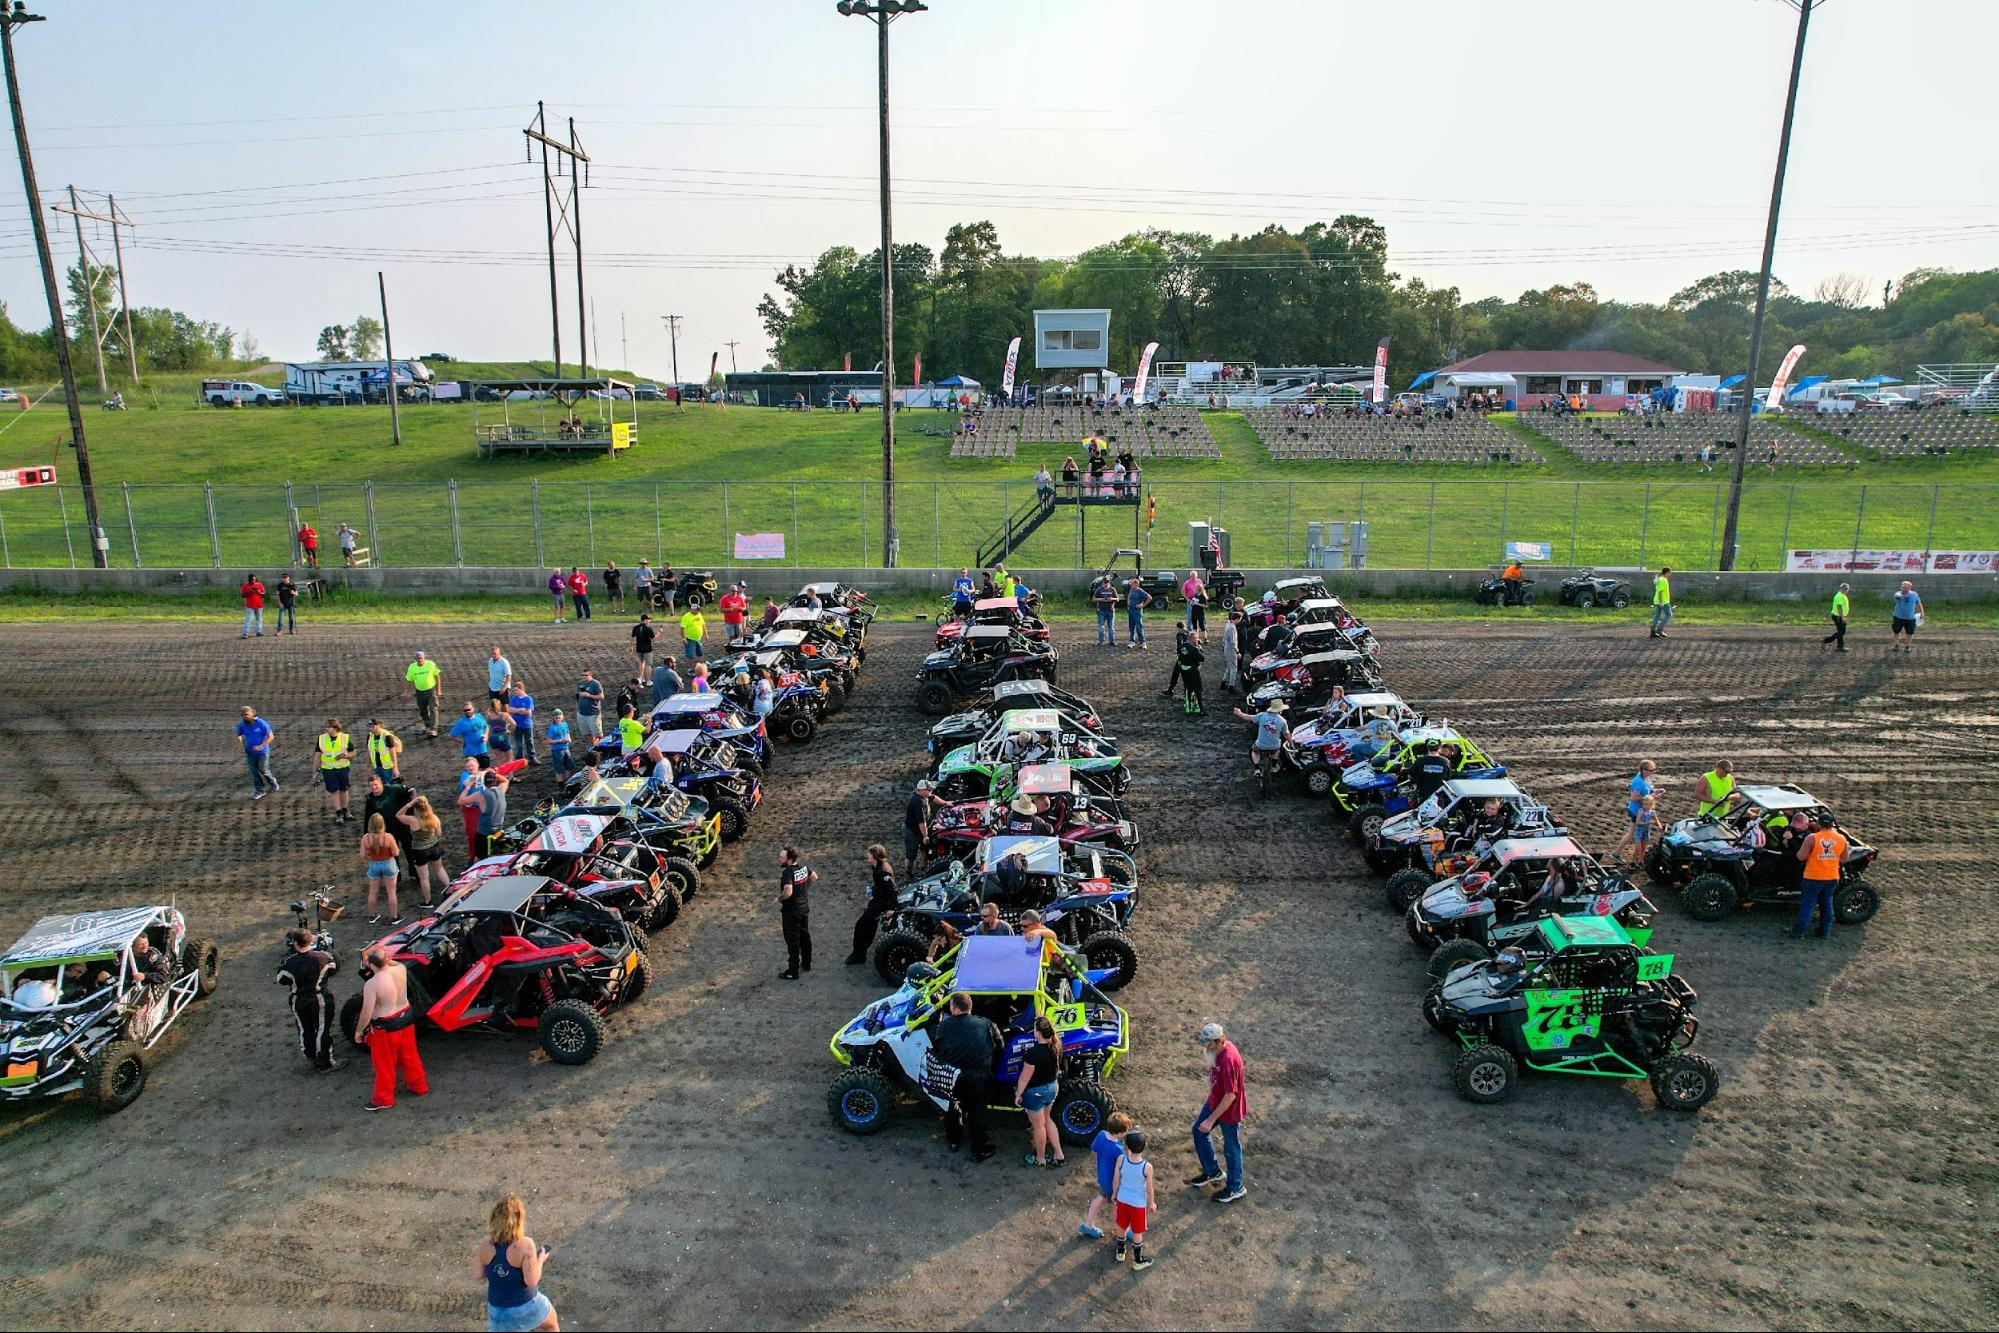 210922 Race teams making final preparations before the start of the 2021 UTV races